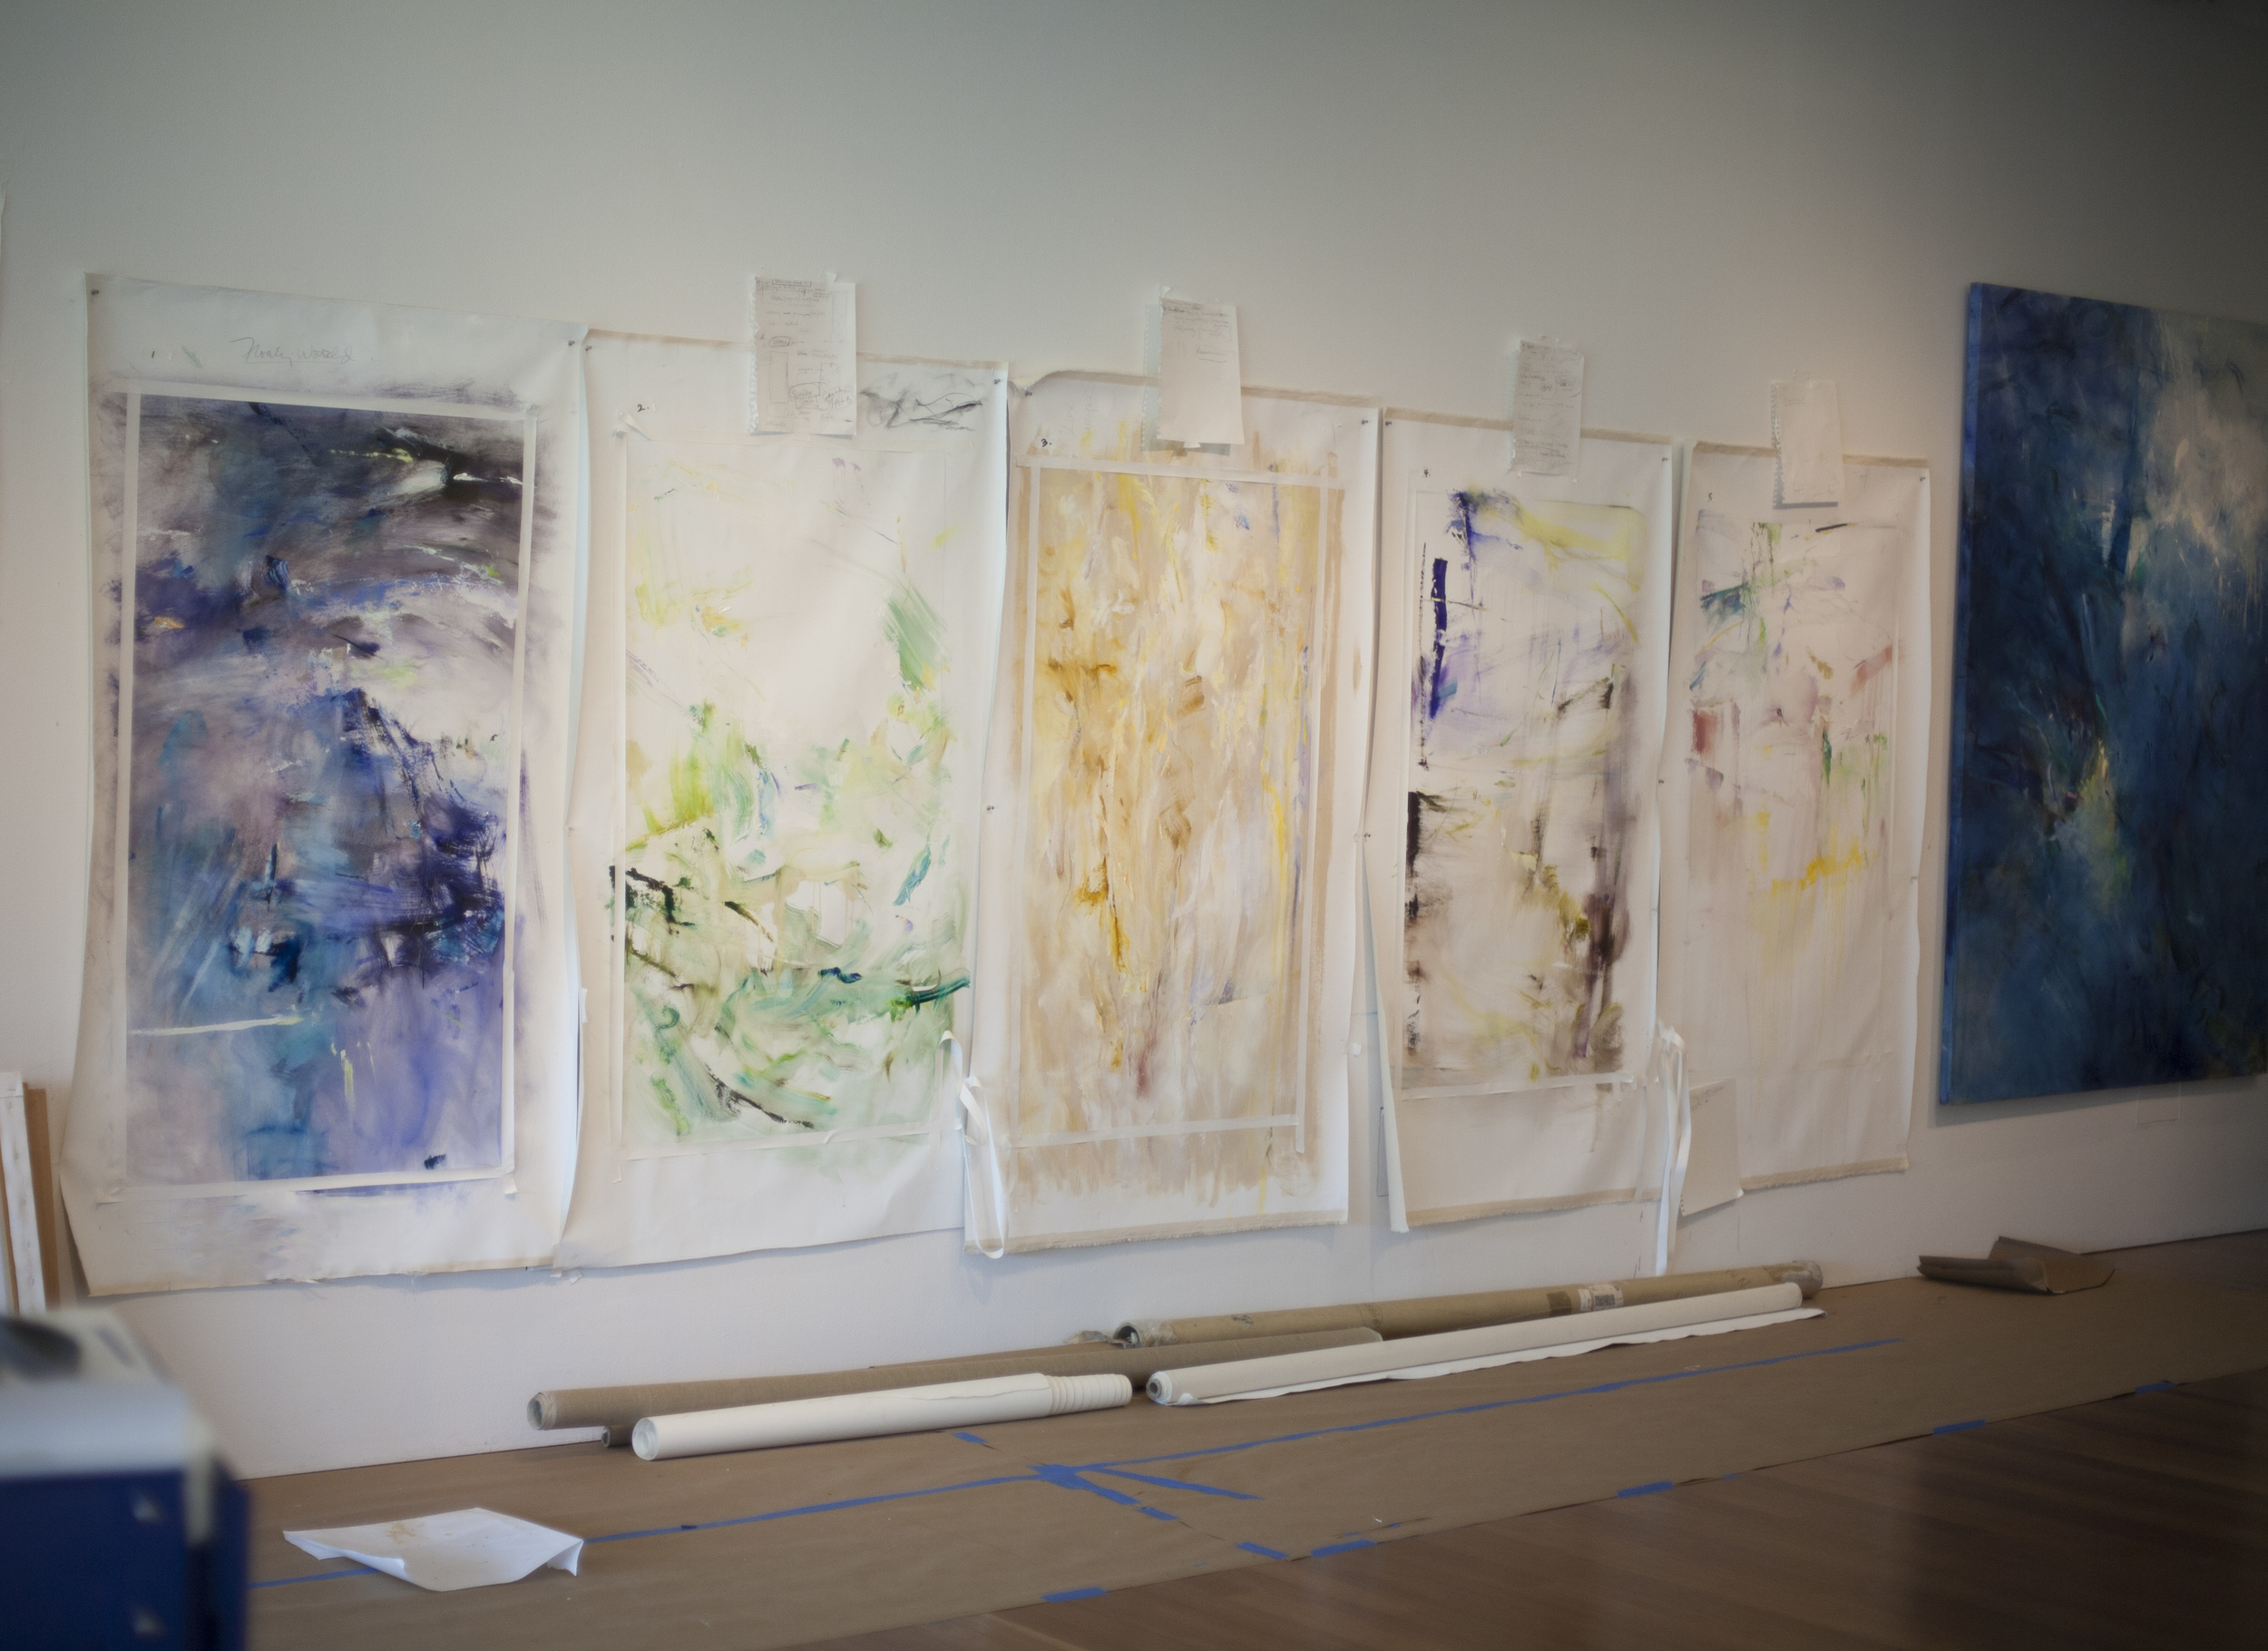 Paintings beginnings, inspired by Gloria's new works